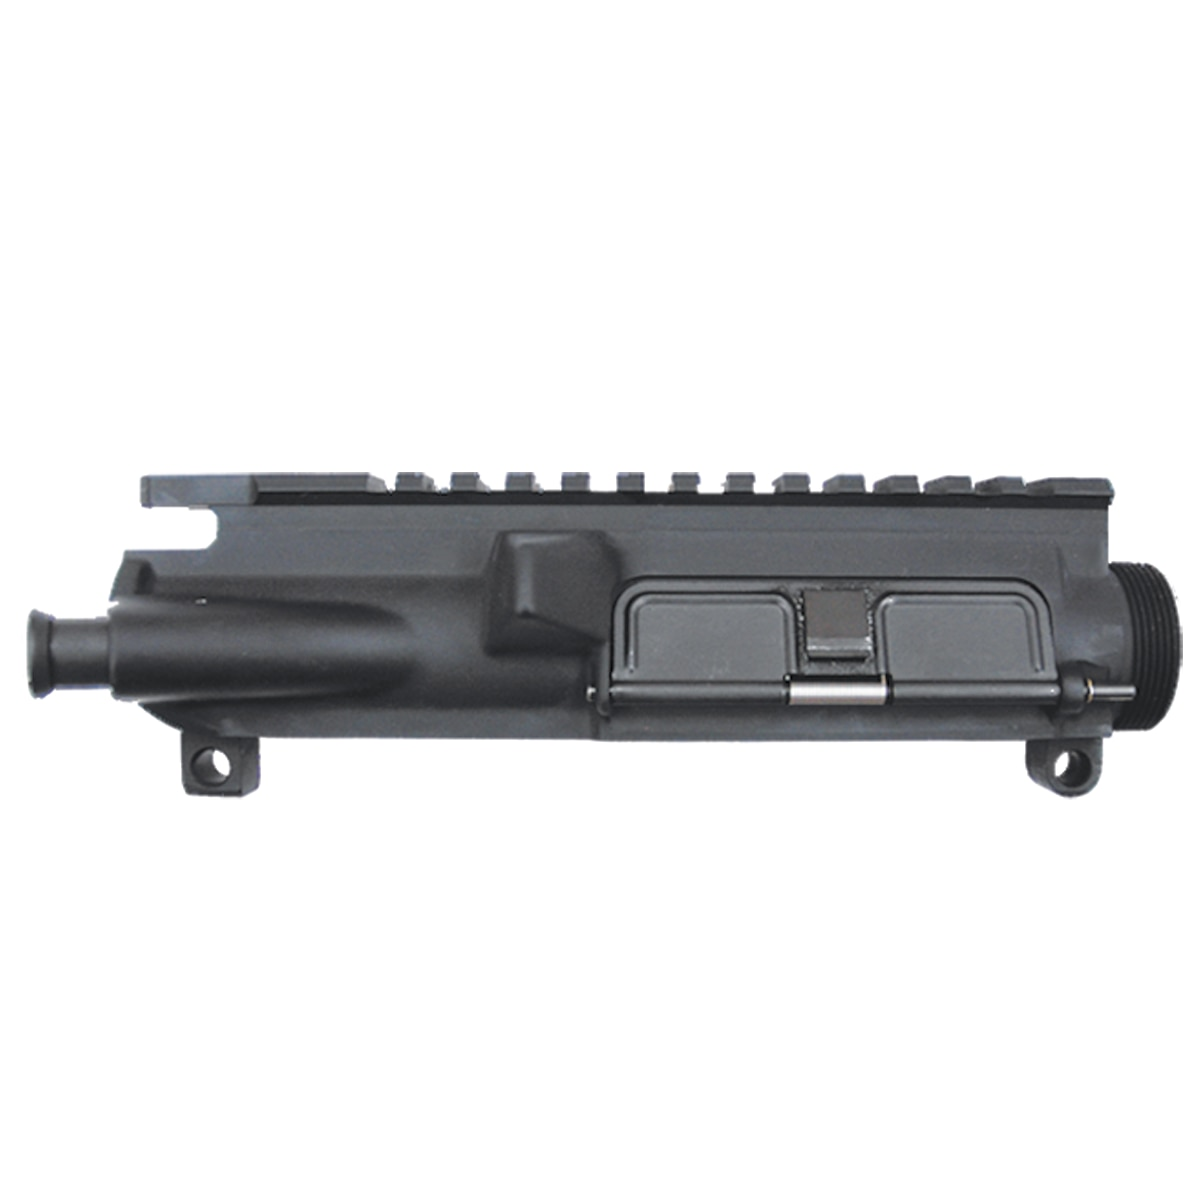 Stag Arms AR-15 Stripped Bolt Carrier